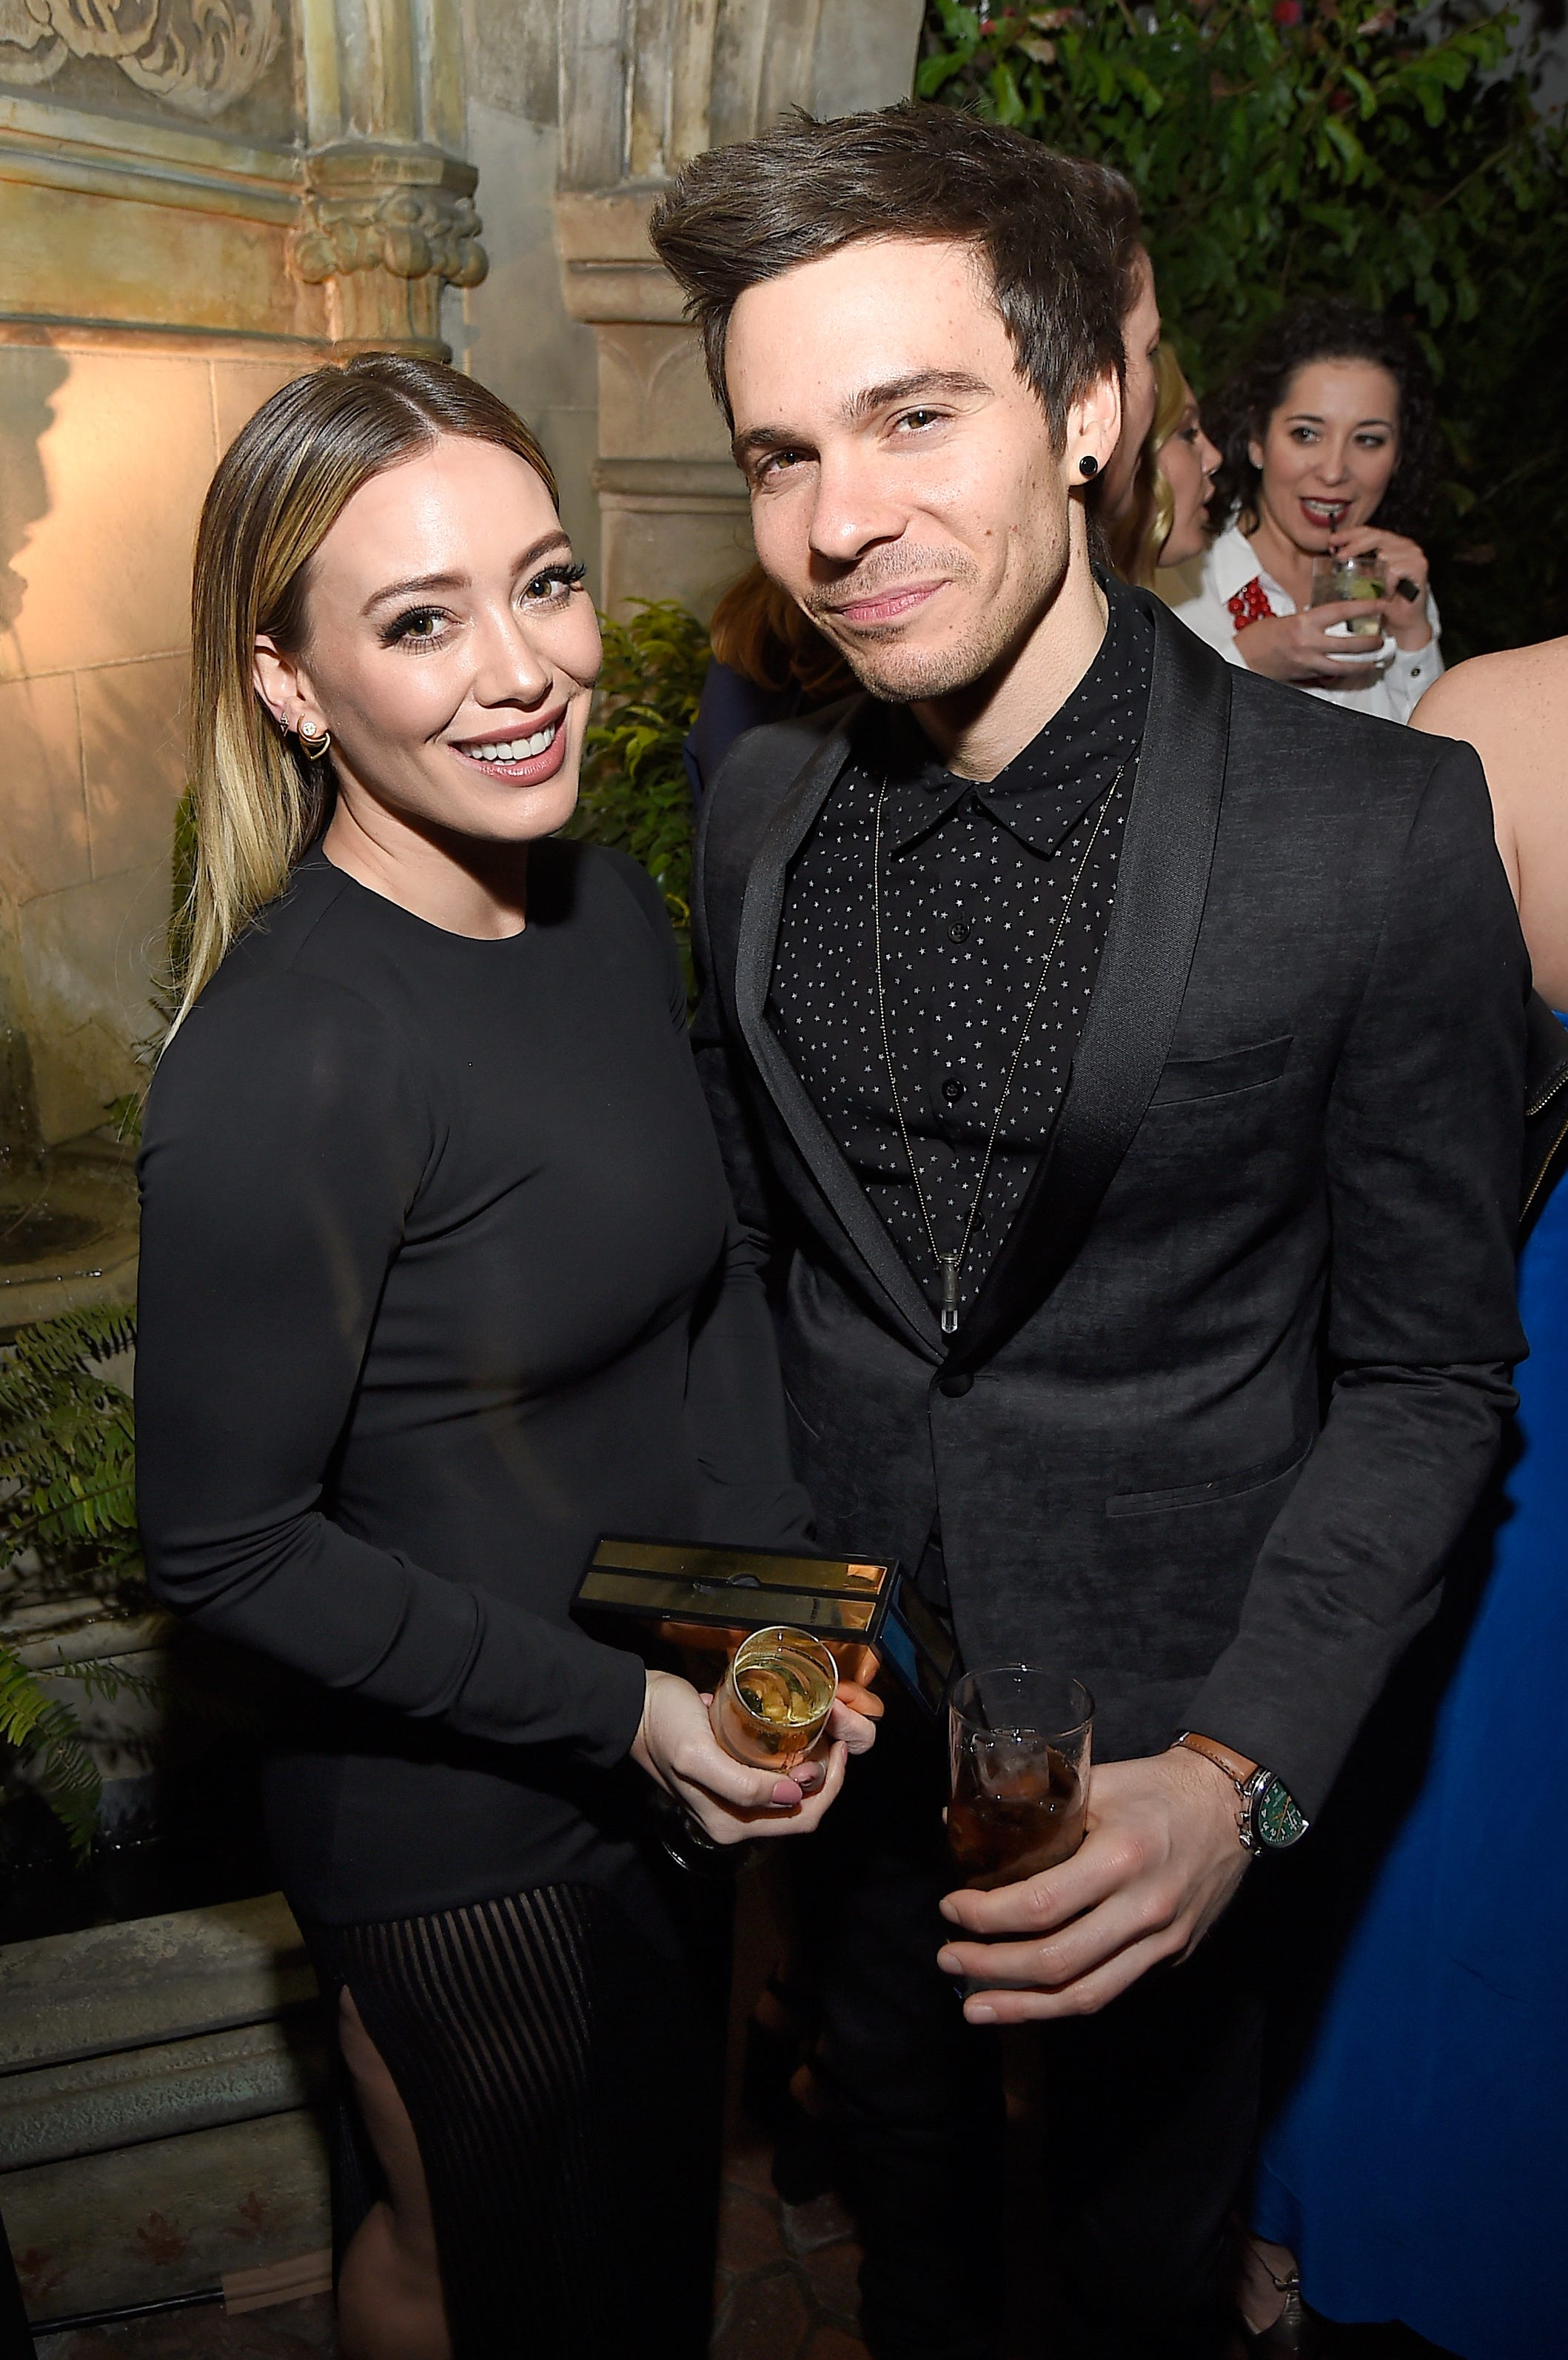 Hilary Duff and Matthew Koma married in a low-key ceremony this weekend